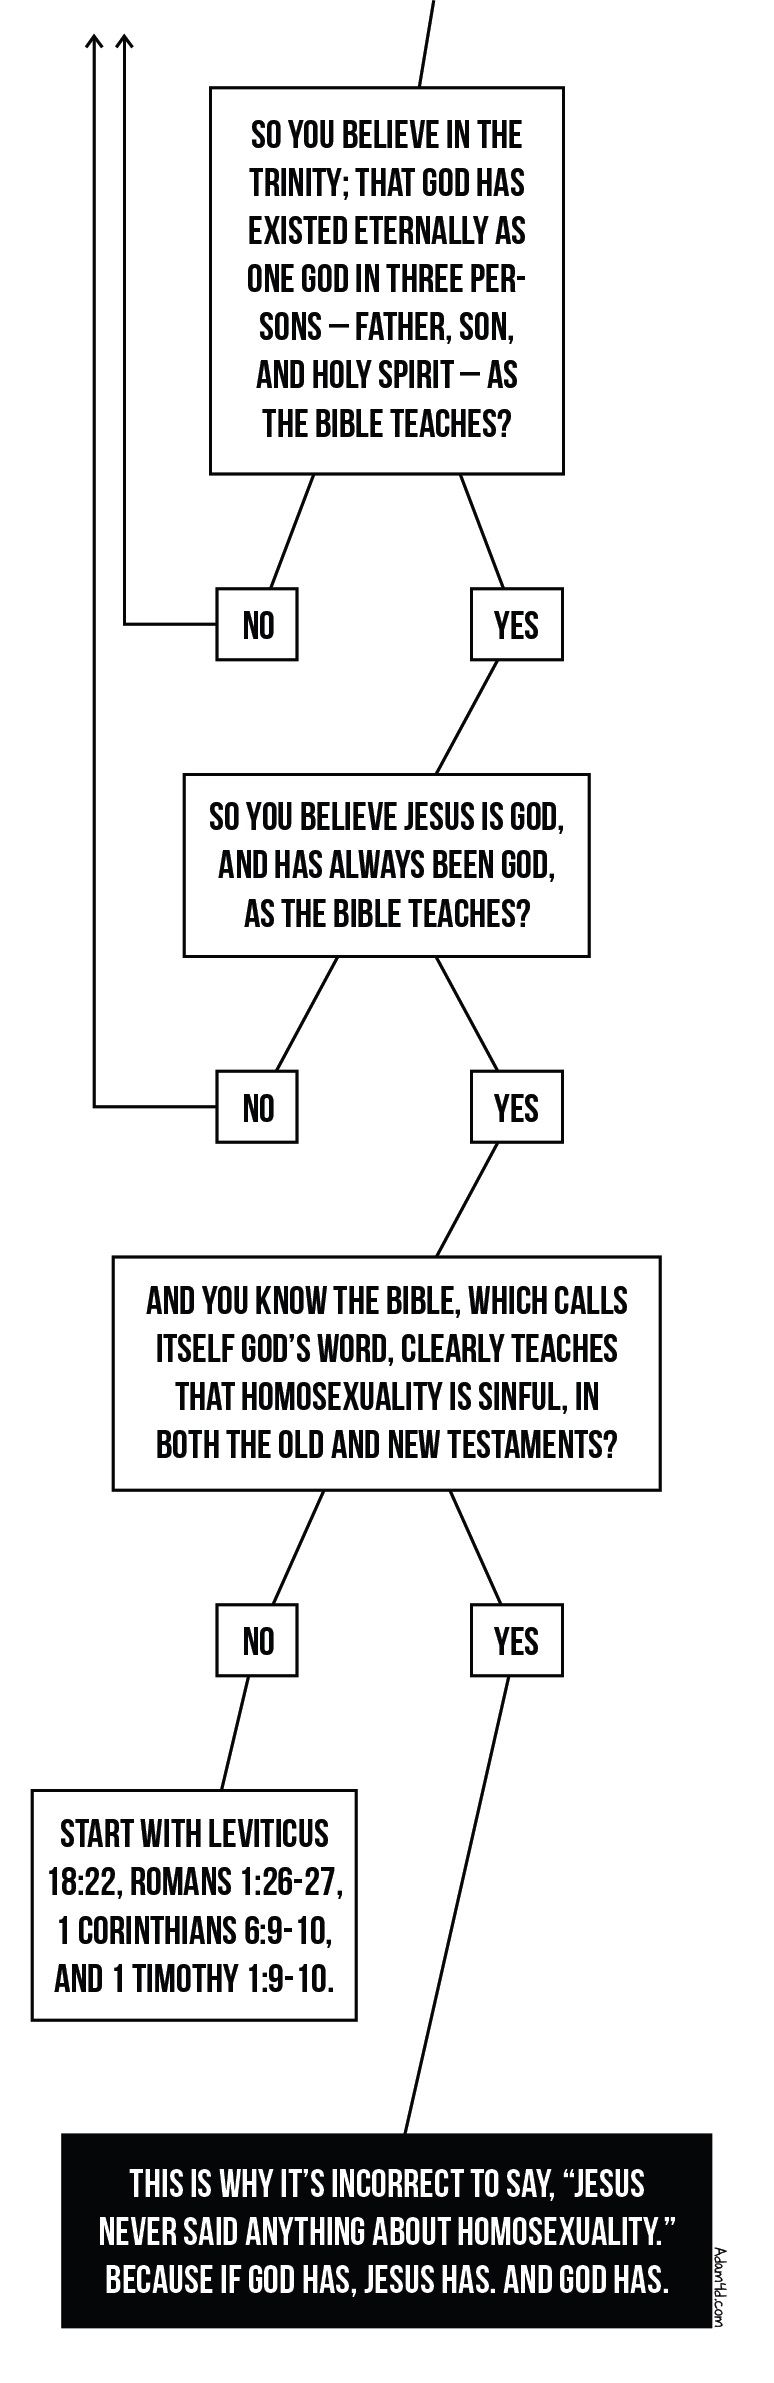 about those gay marriage flow charts shameless popery 2015 04 10 said2